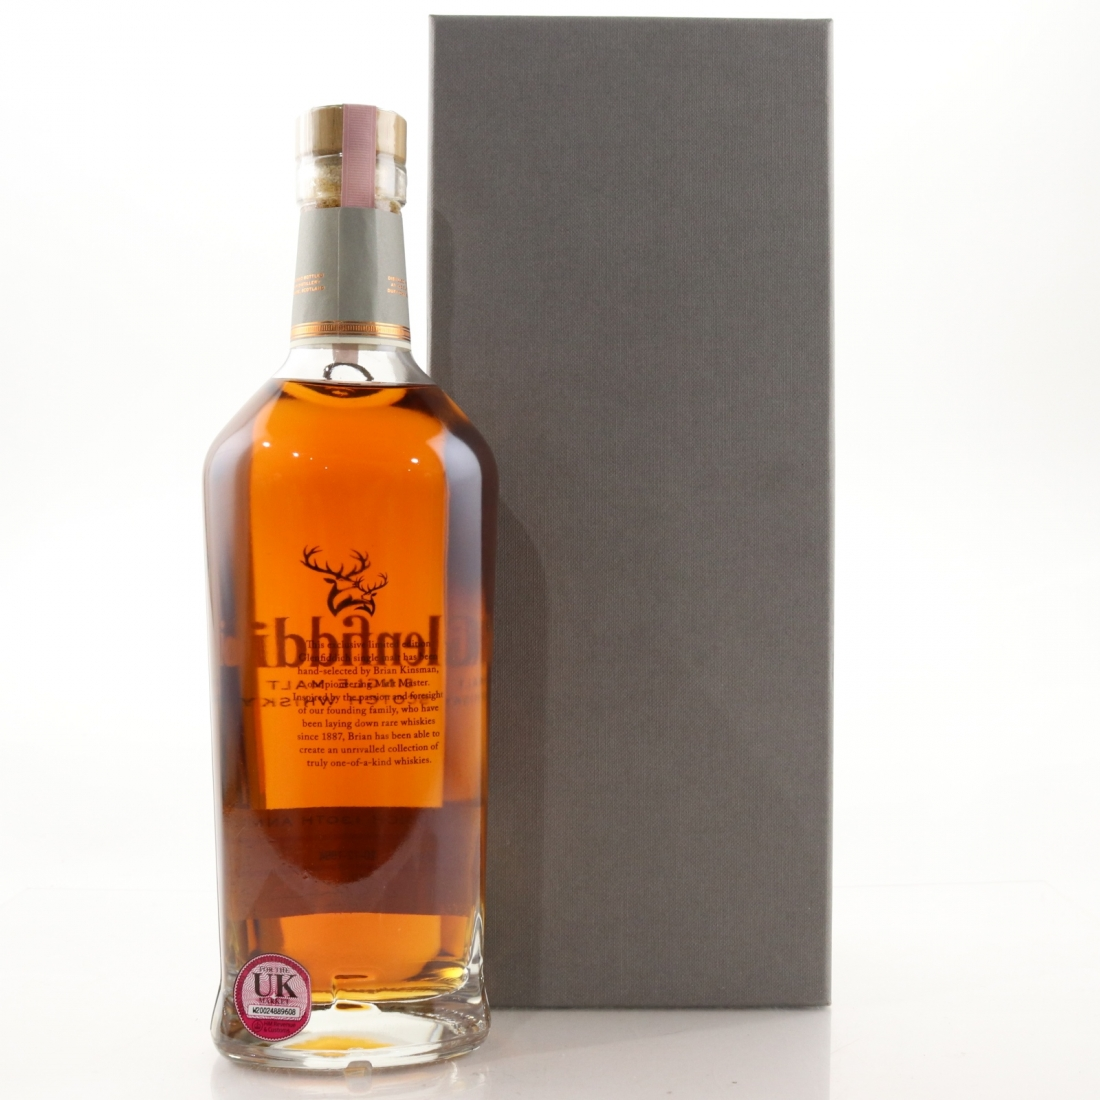 Glenfiddich 1994 Rare Cask Distillery Exclusive 20 Year Old